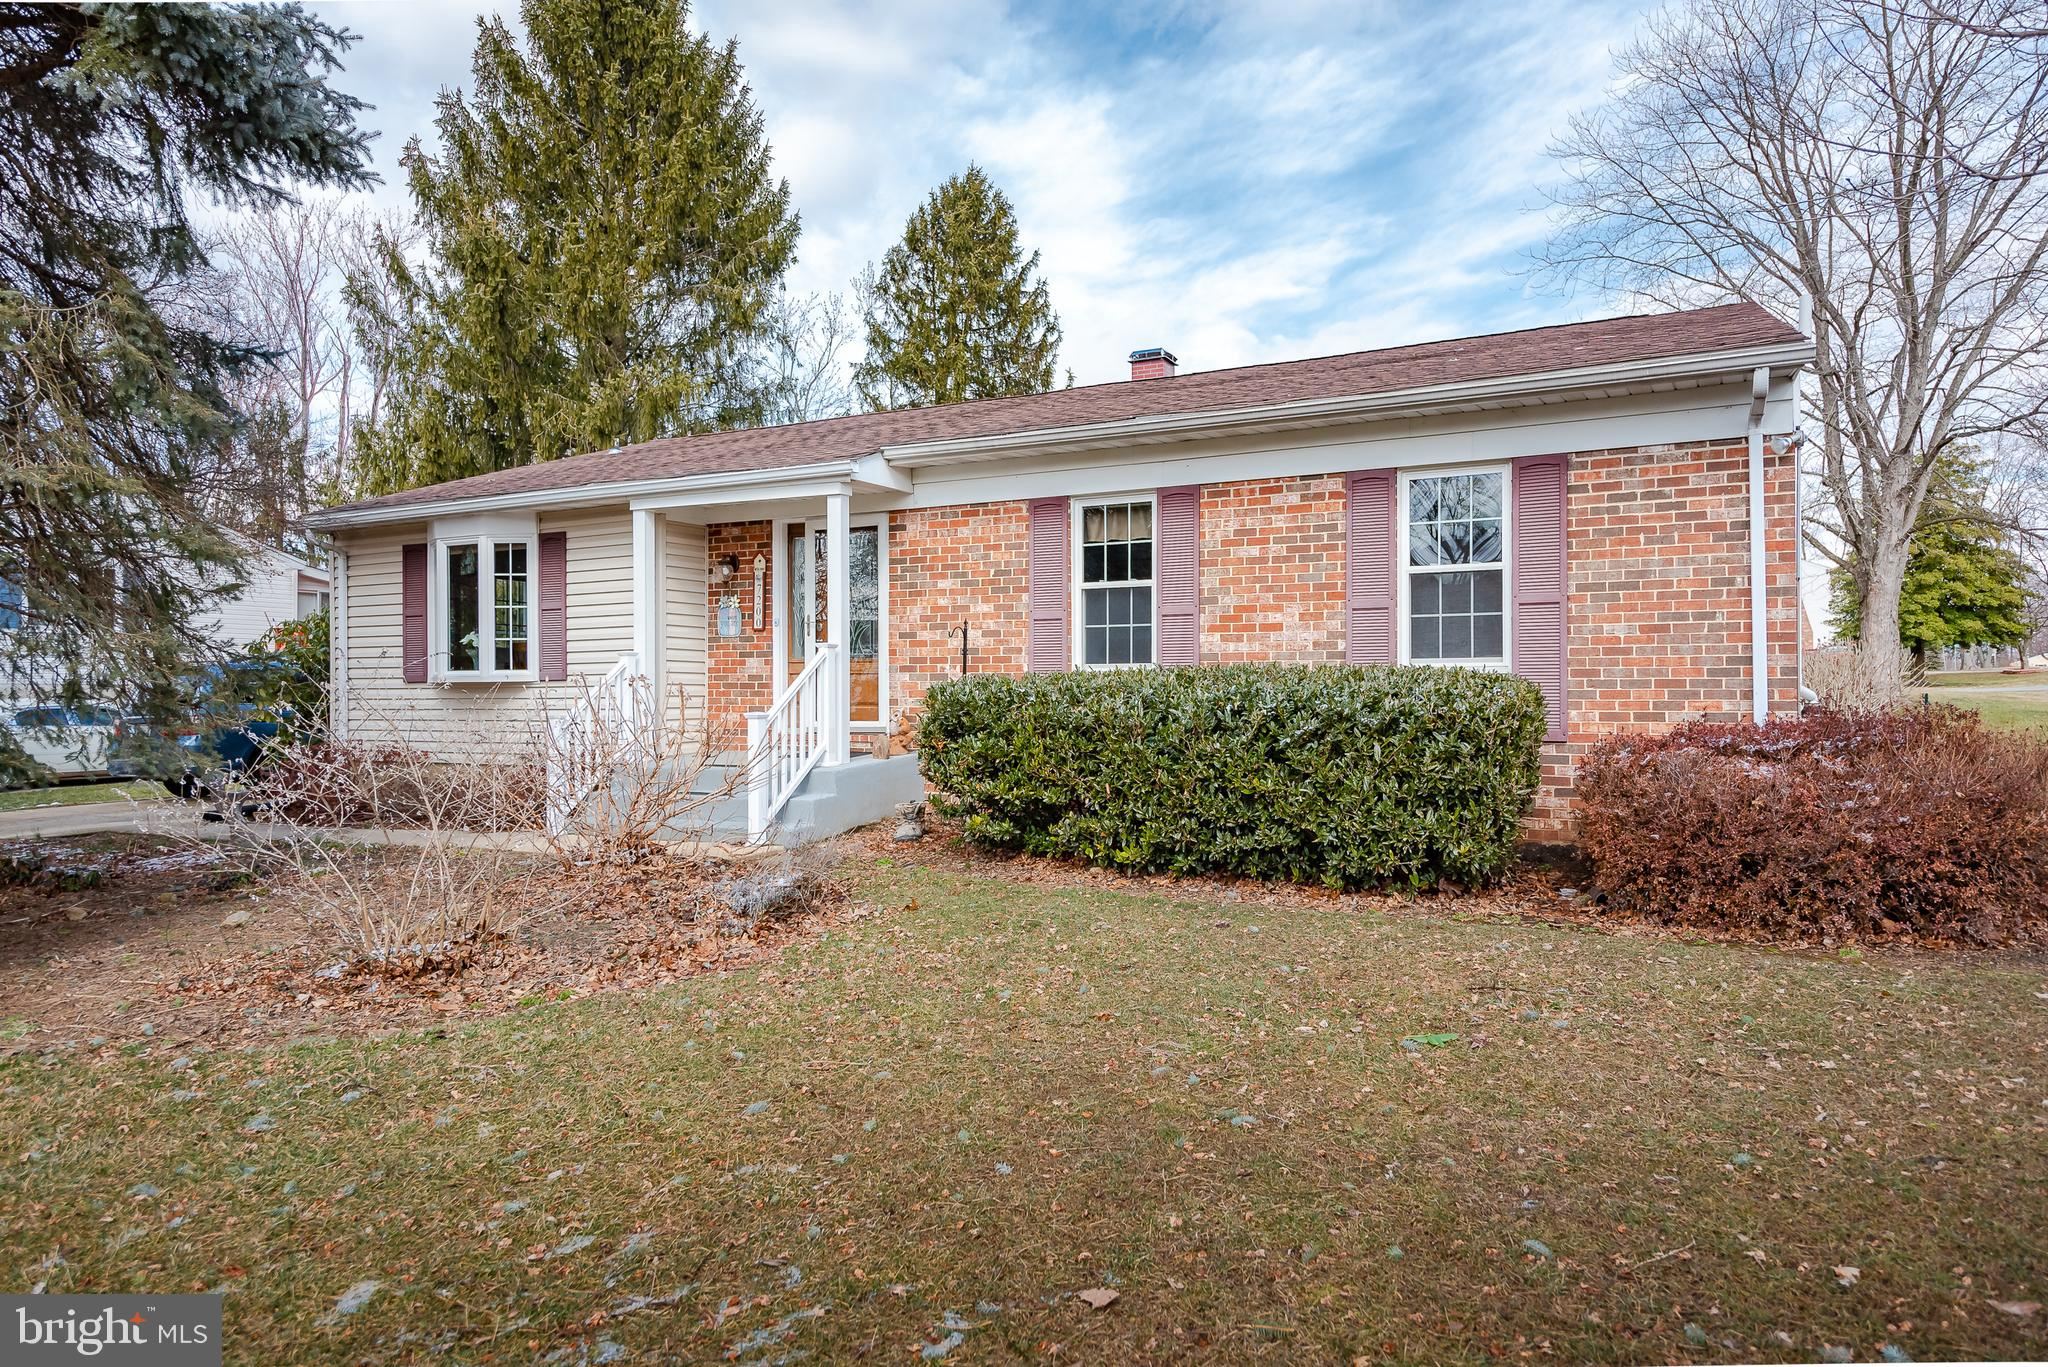 Beautifully upgraded Ranch-style home on large corner lot offers exceptional, move-in ready living spaces!  Easy to care for wood-look laminate floors span the main level living spaces including dining room with bright bay window, newly updated kitchen featuring quartz counters, stylish grey cabinetry, tile backsplash, farm sink and sunny breakfast nook off spacious living room overlooking concrete patio and flat, fenced back yard.  Comfy main level bedrooms include sizable Owner~s suite with double closet and newly remodeled attached full bath.  Complete with full, finished basement featuring an expansive Rec Room, full bathroom and plenty of space for storage with built in shelving! Conveniently located to shopping, dining and highways, this home is all you've been searching for!